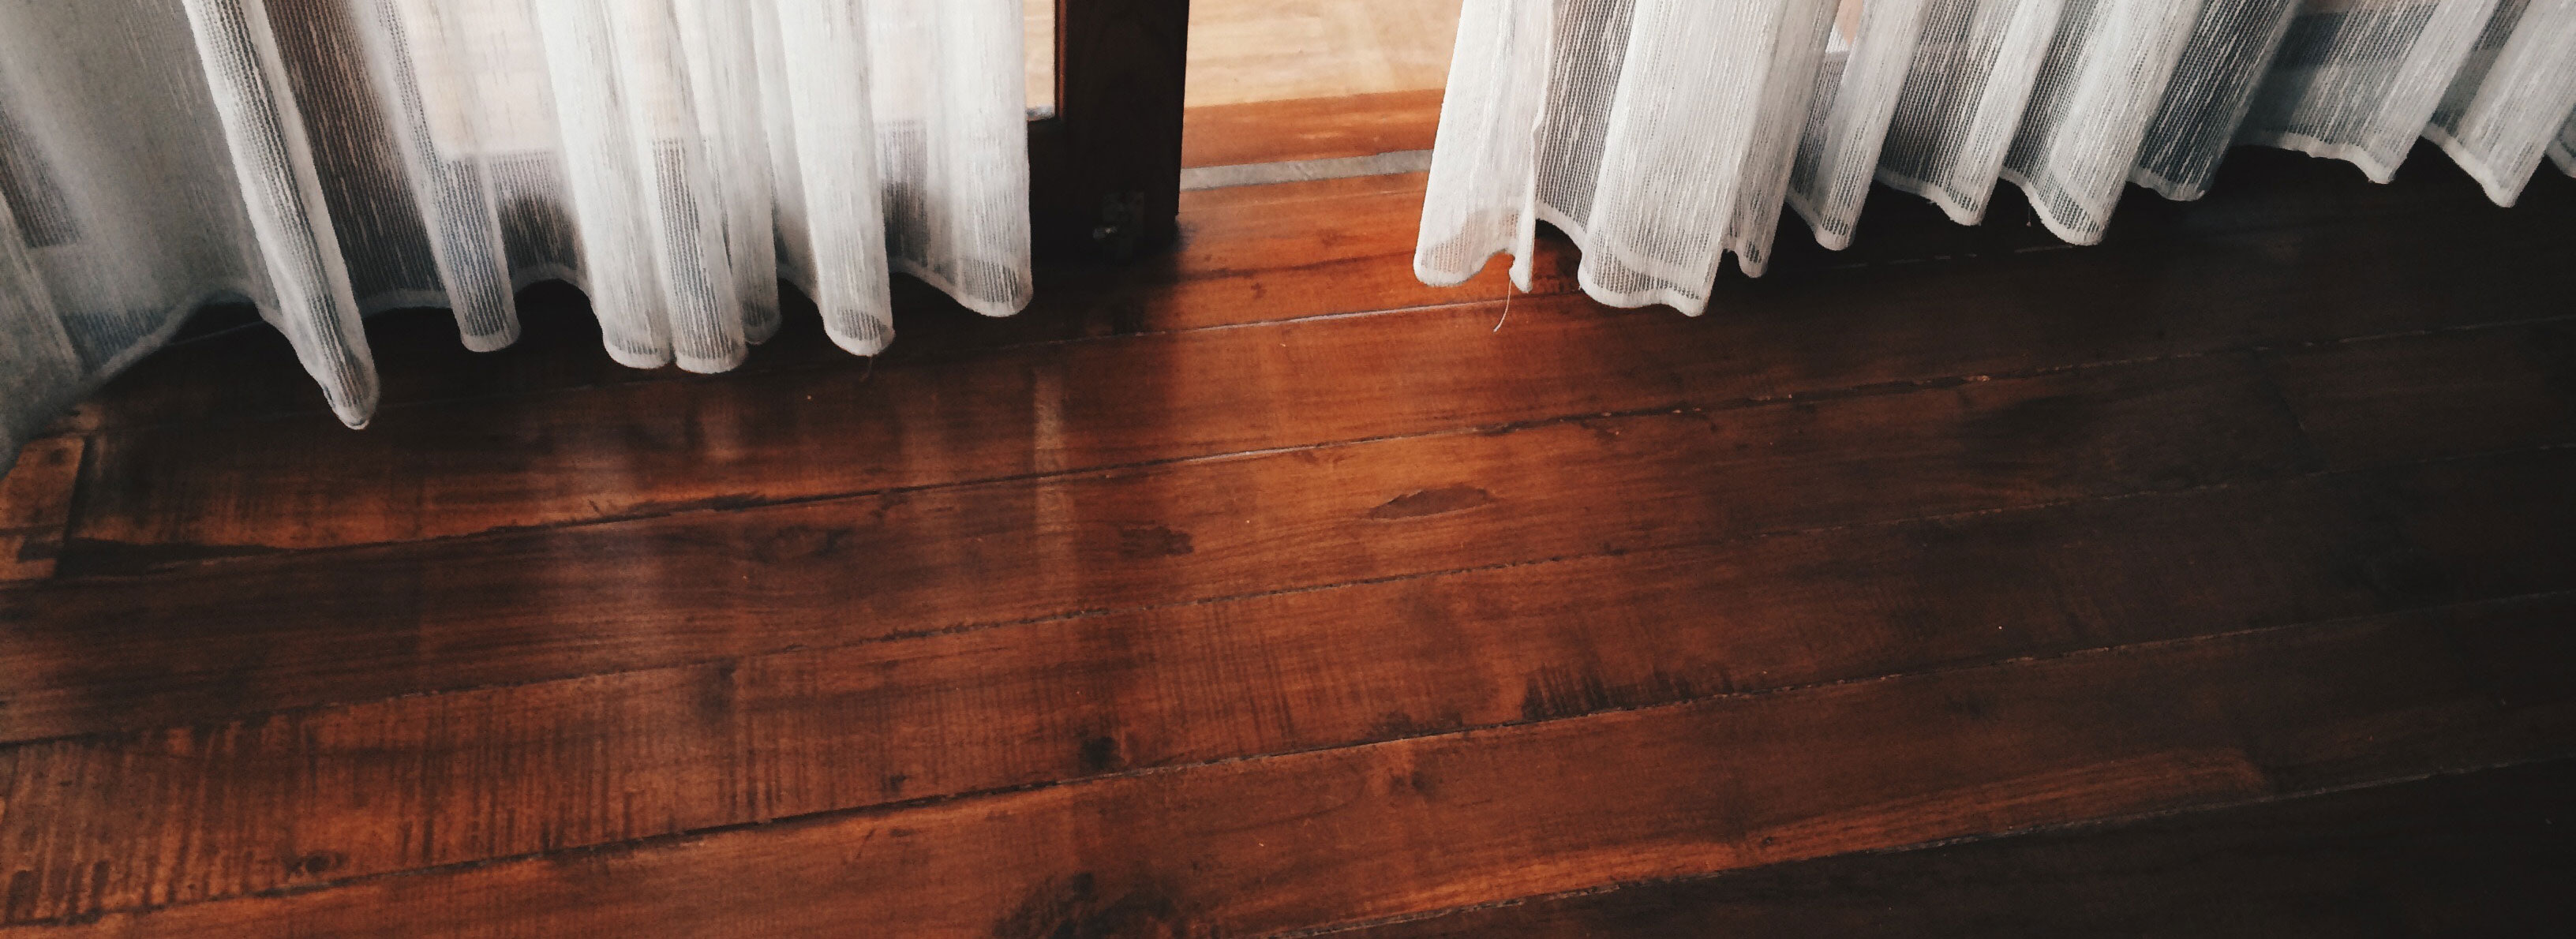 Purity Cleaning Hardwood Floors